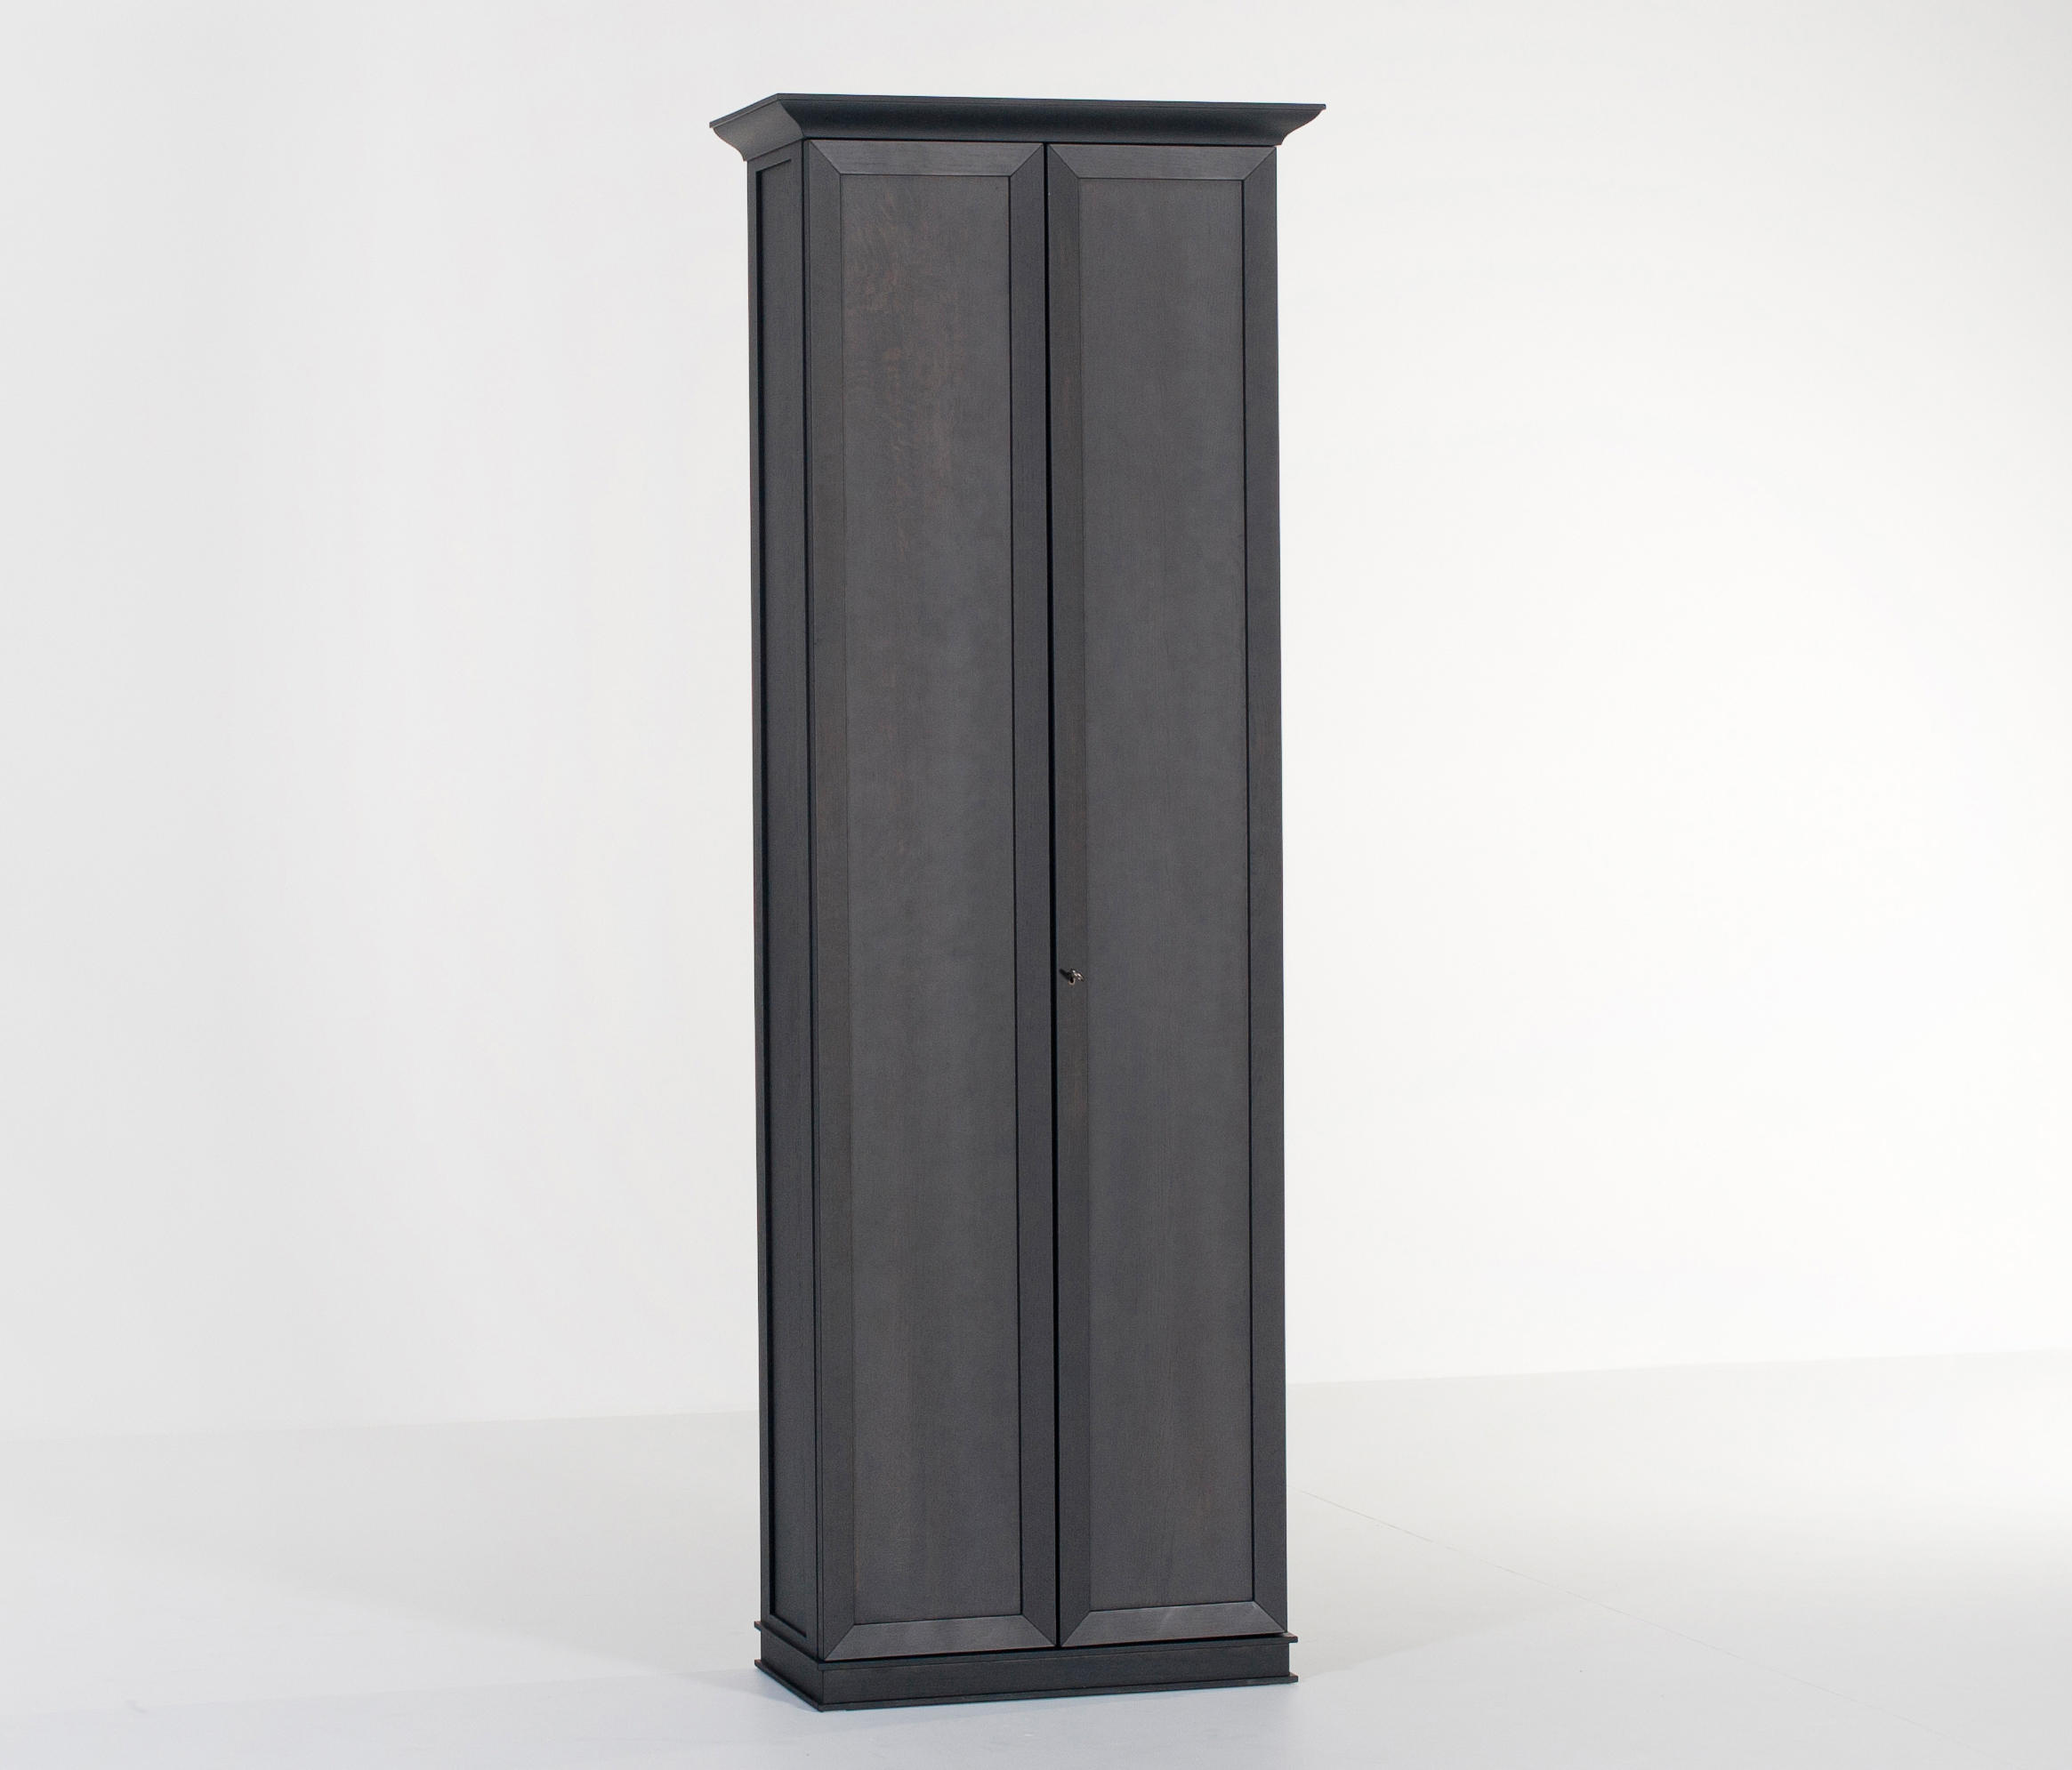 plot cabinet cabinets from van rossum architonic. Black Bedroom Furniture Sets. Home Design Ideas